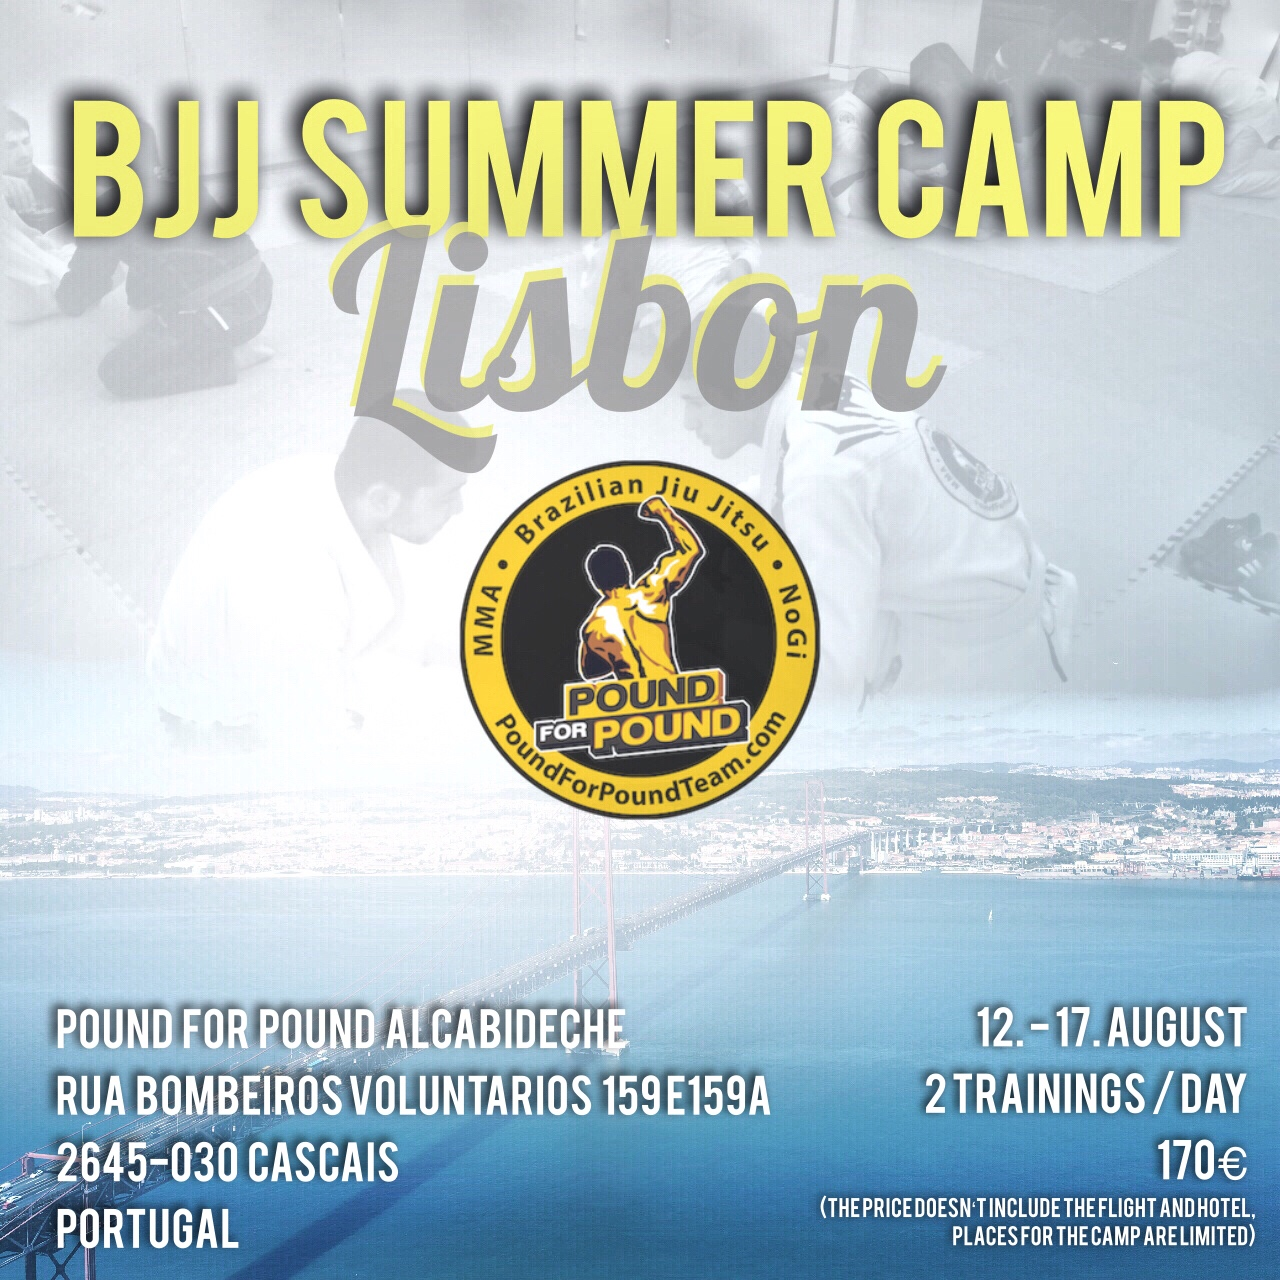 BJJ Summer Camp 2019 Lissabon